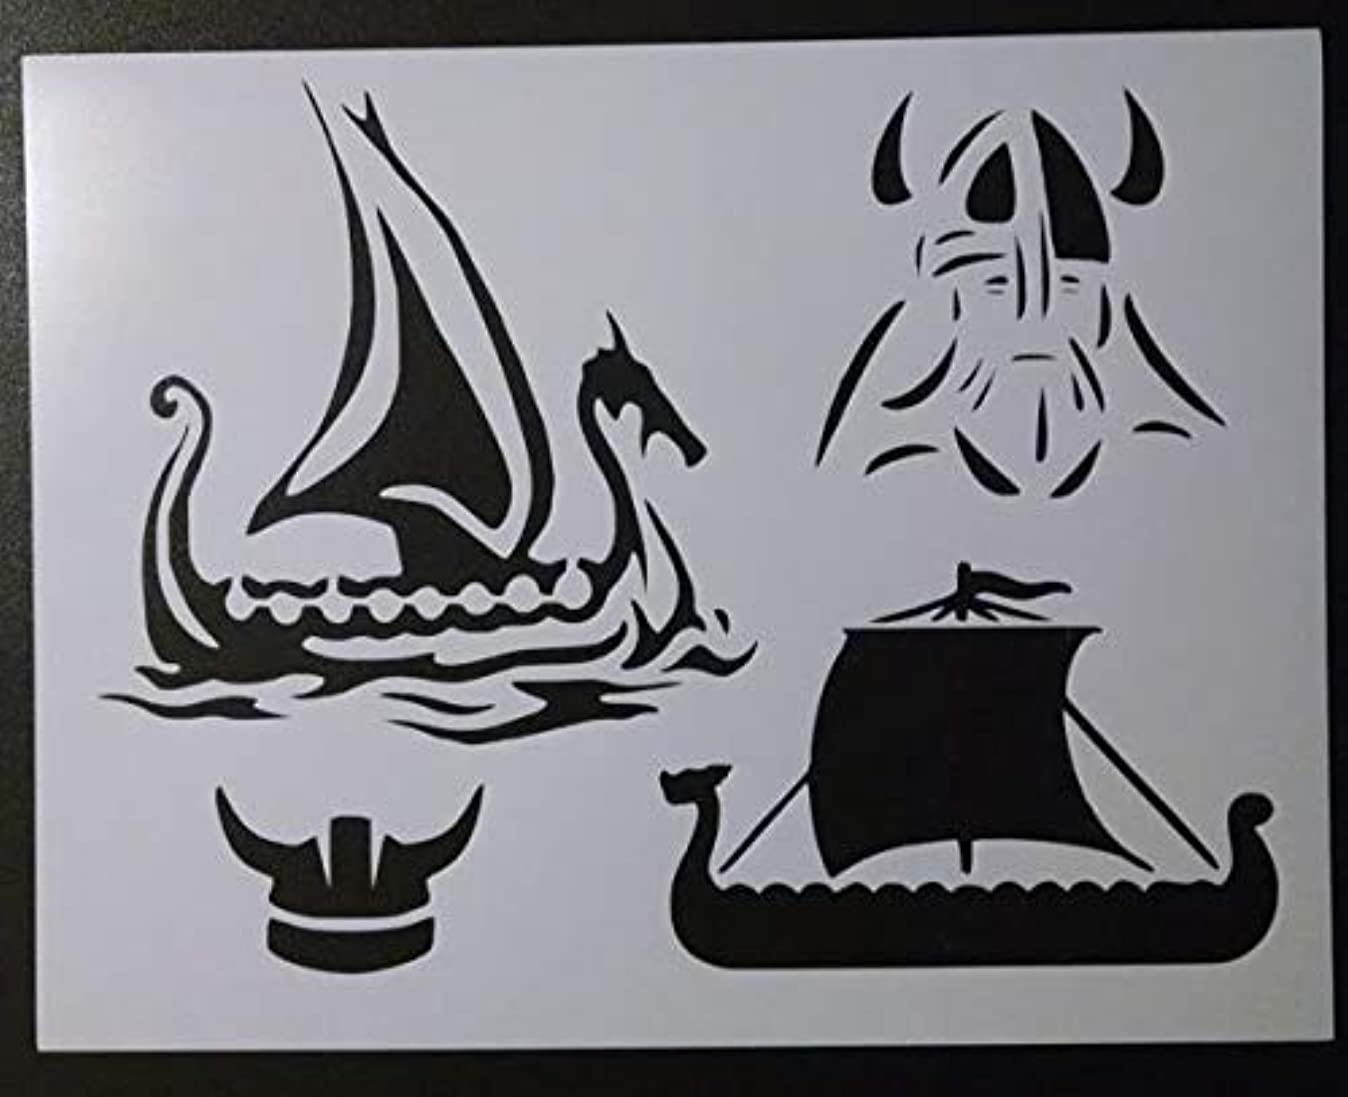 Custom Stencil Viking Vikings Ship Boat Head Helmet 11 x 8.5 h0957102373